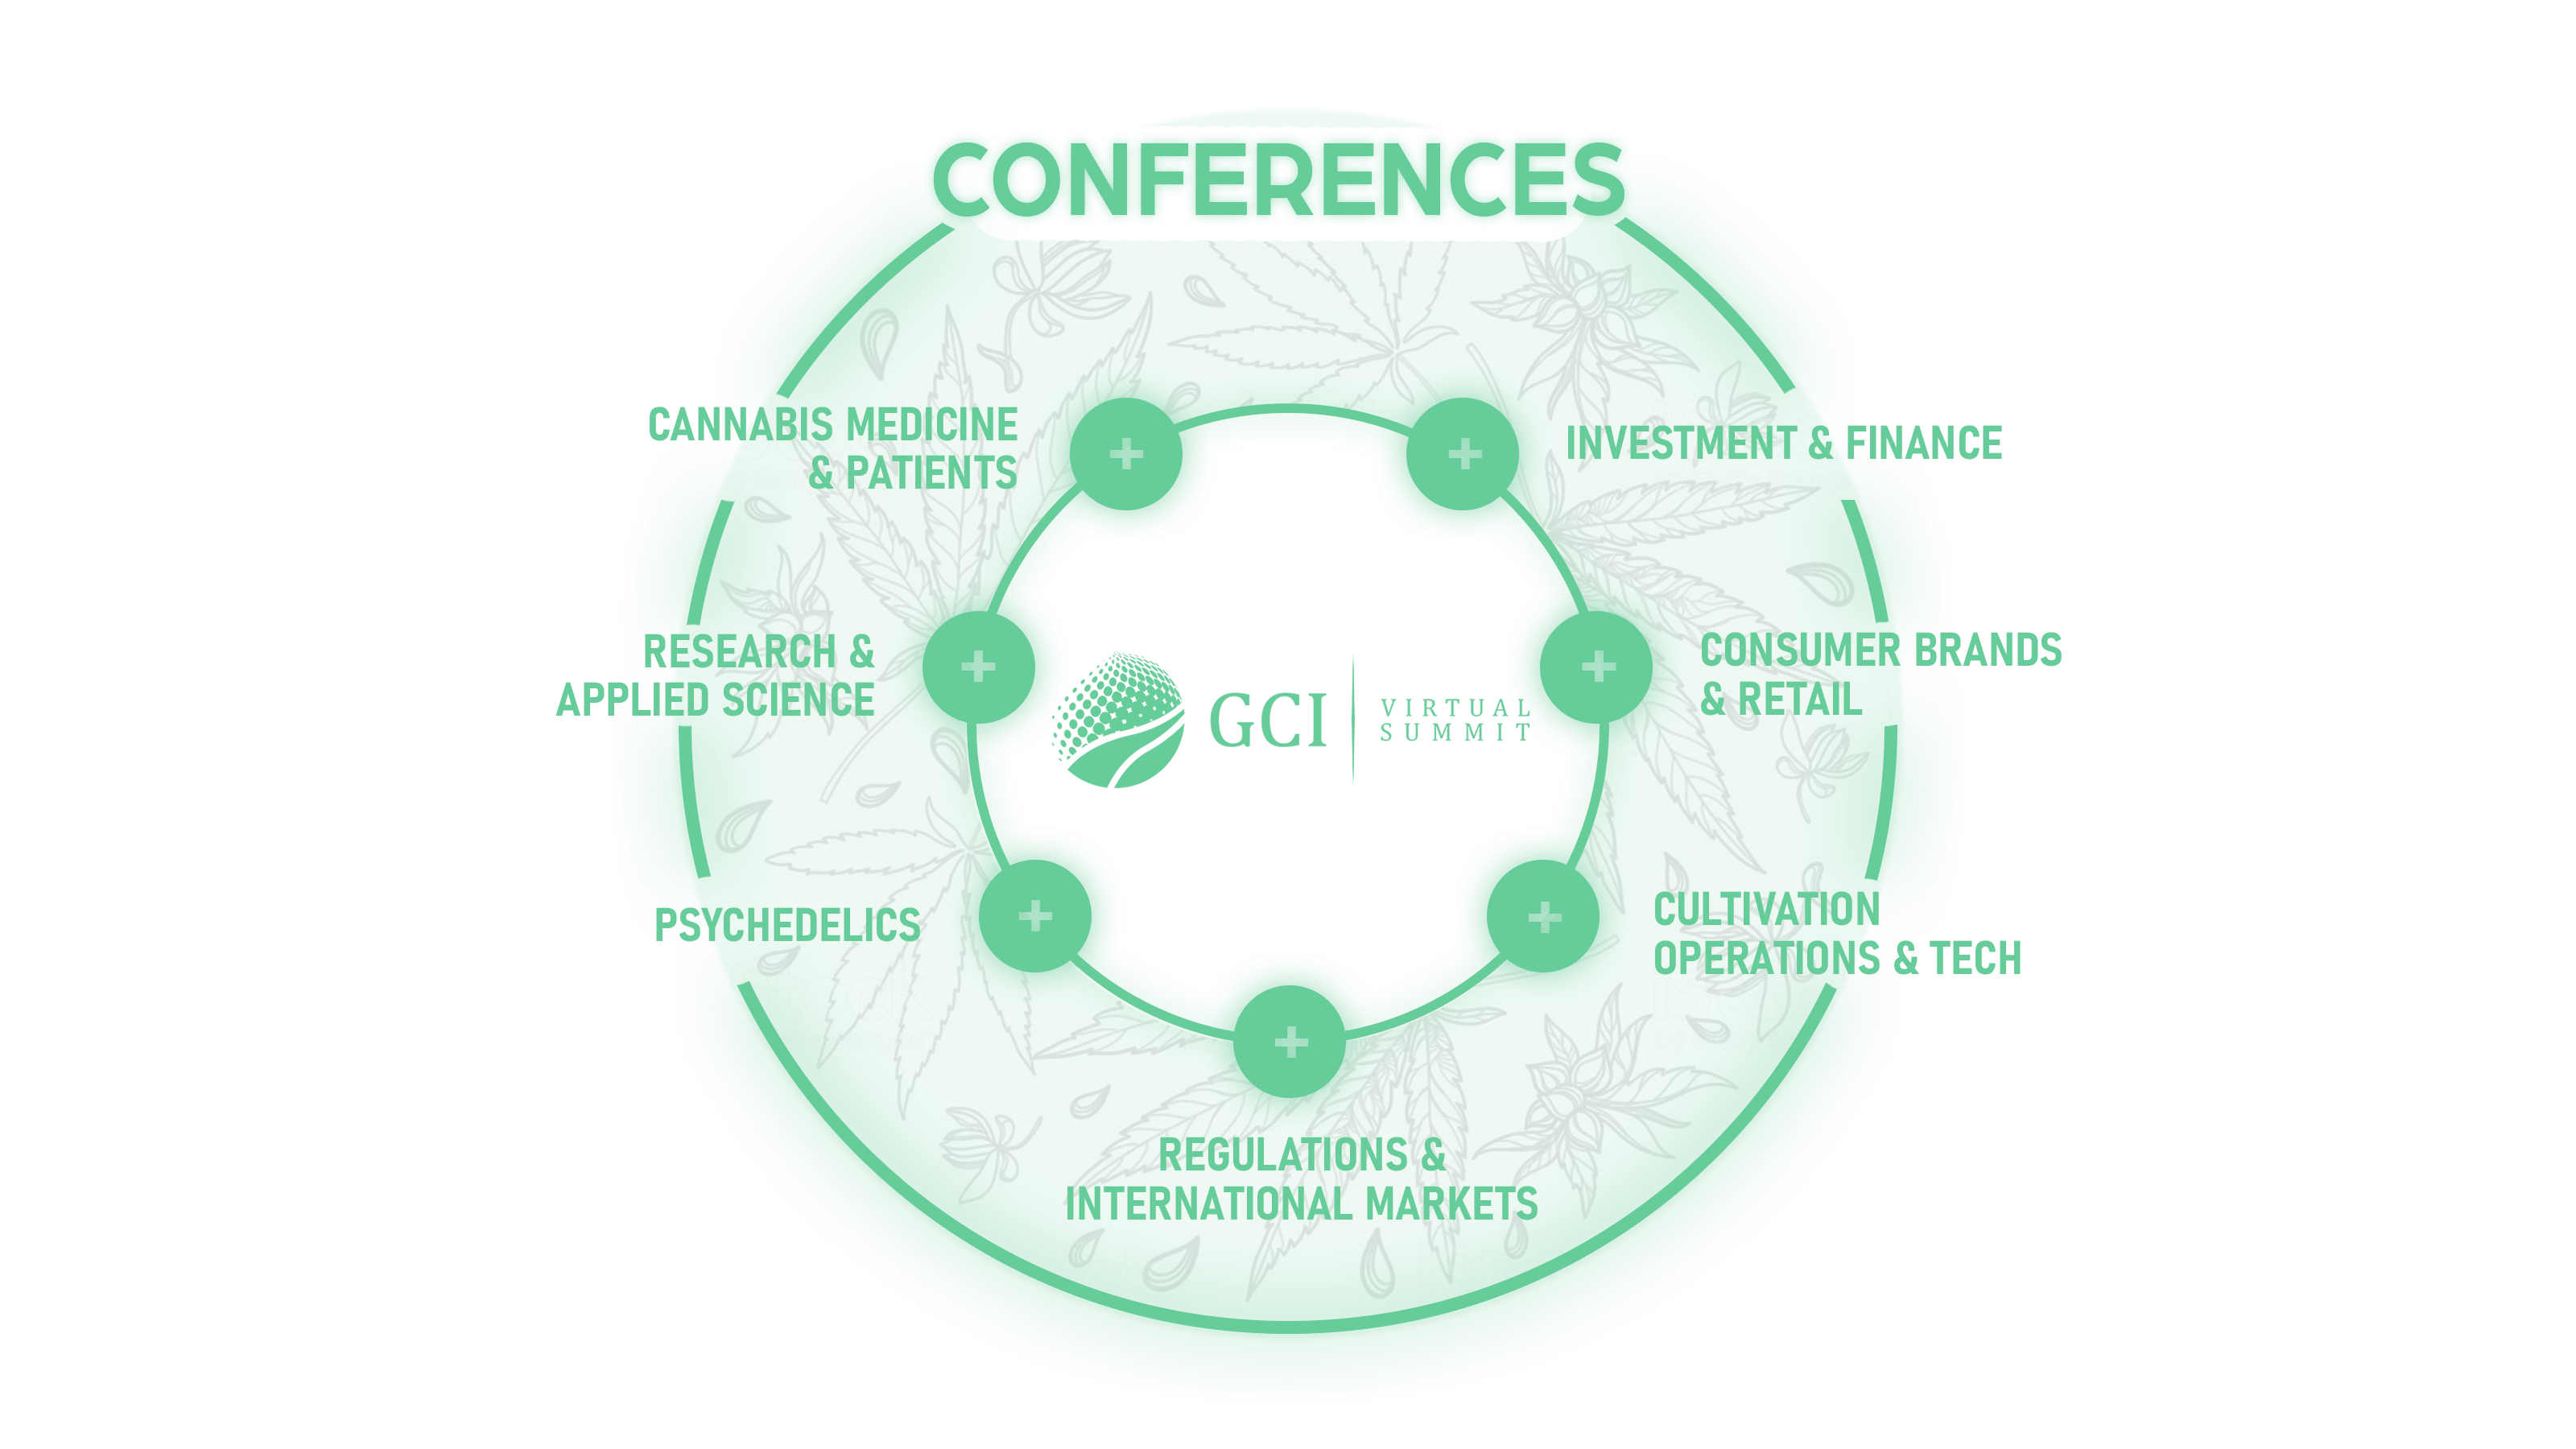 GCI Virtual Summit - Conferences - Global Cannabis Intelligence - Cannabis - Psychedelics